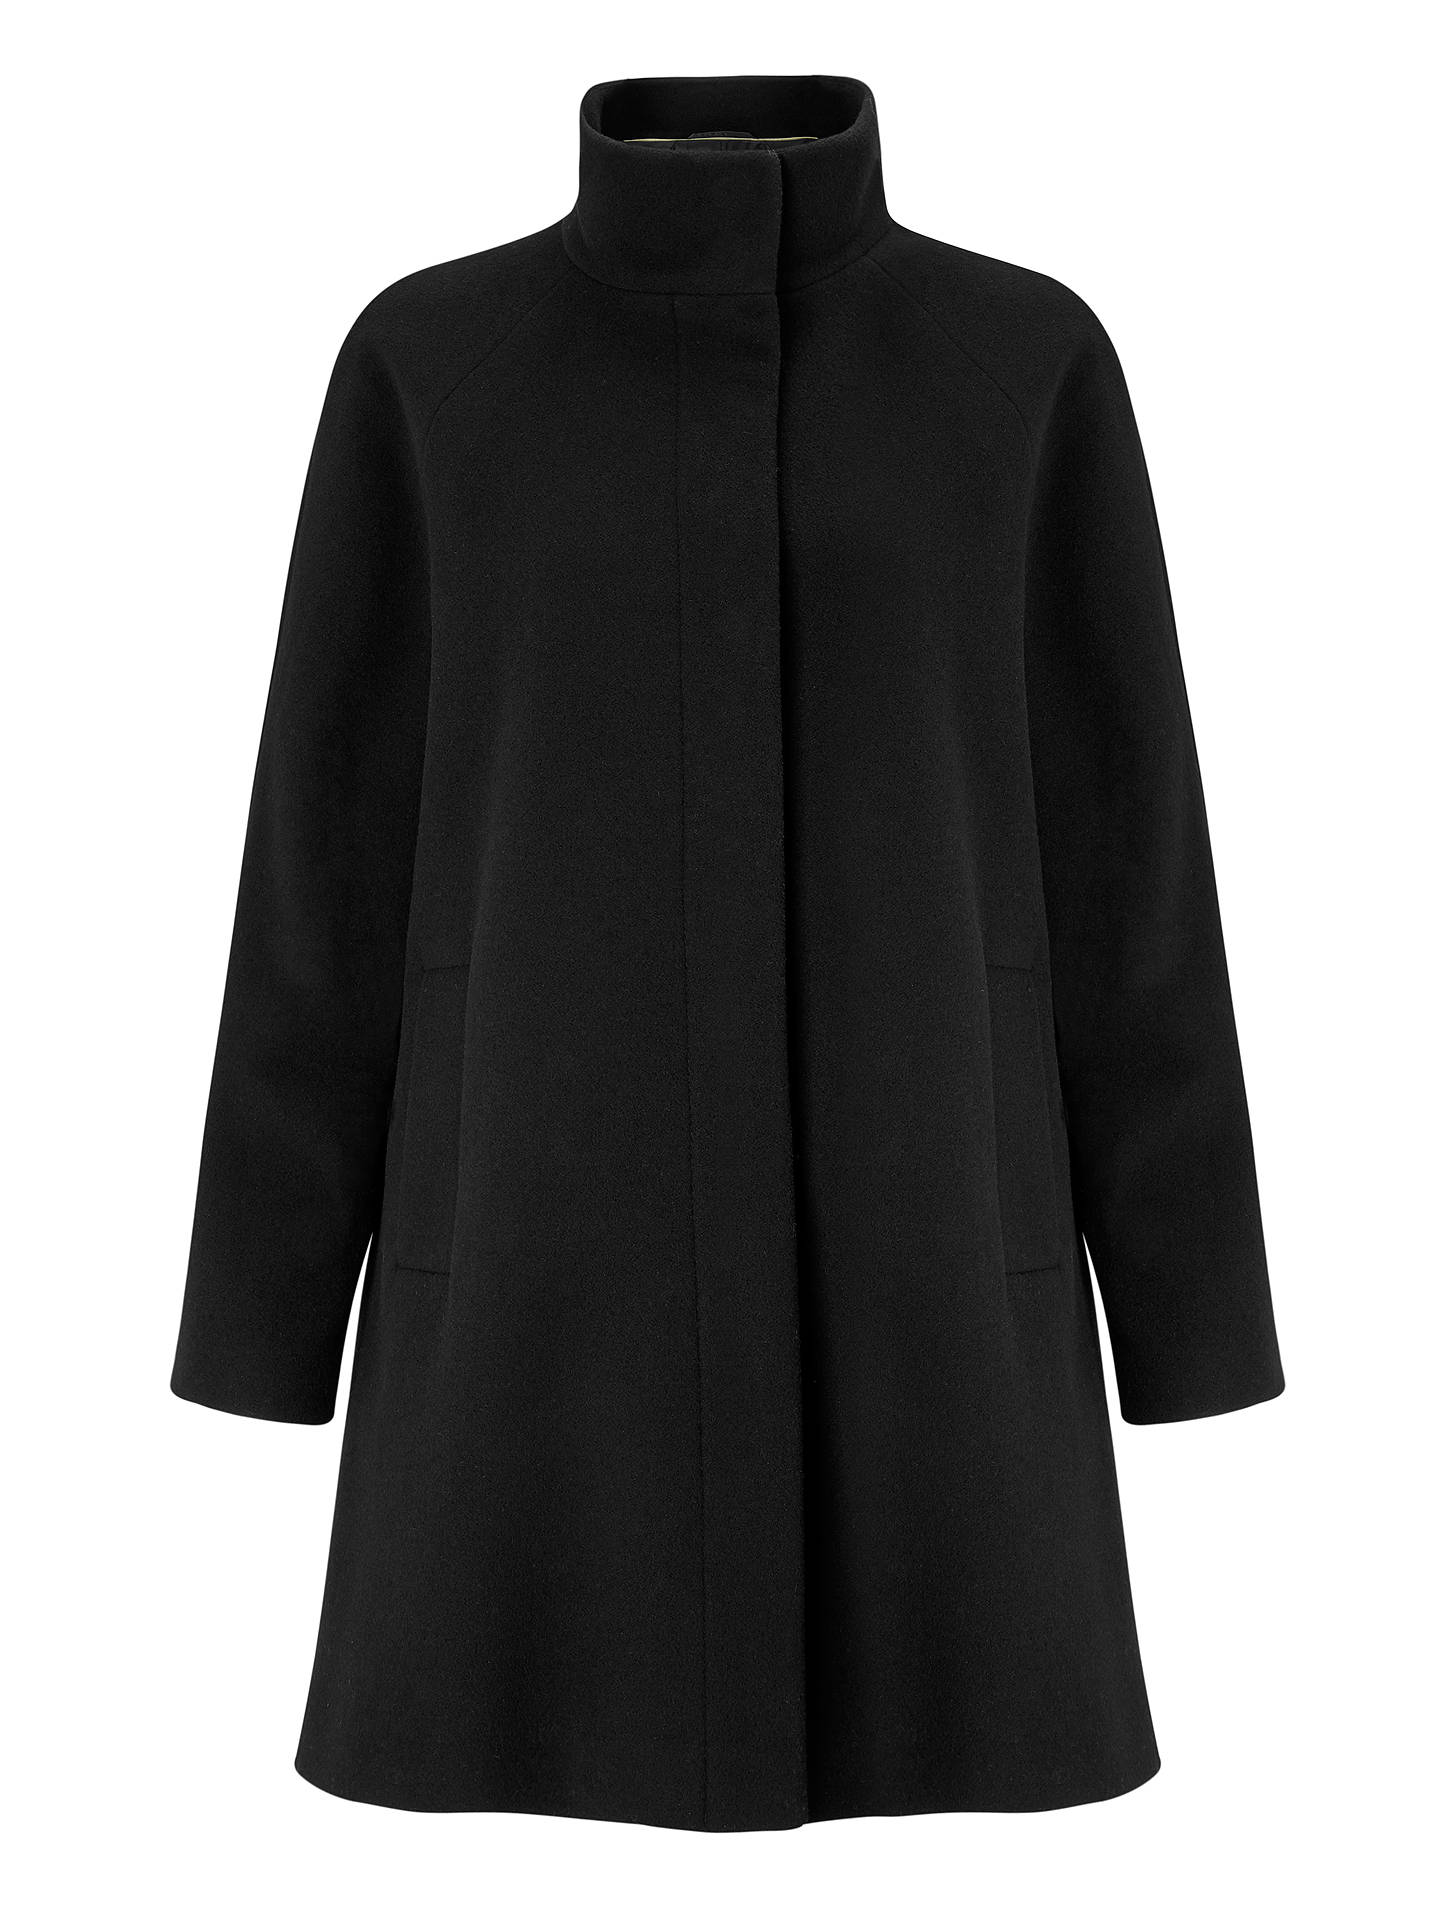 BuyJohn Lewis & Partners Funnel Neck Swing Coat, Black, 8 Online at johnlewis.com